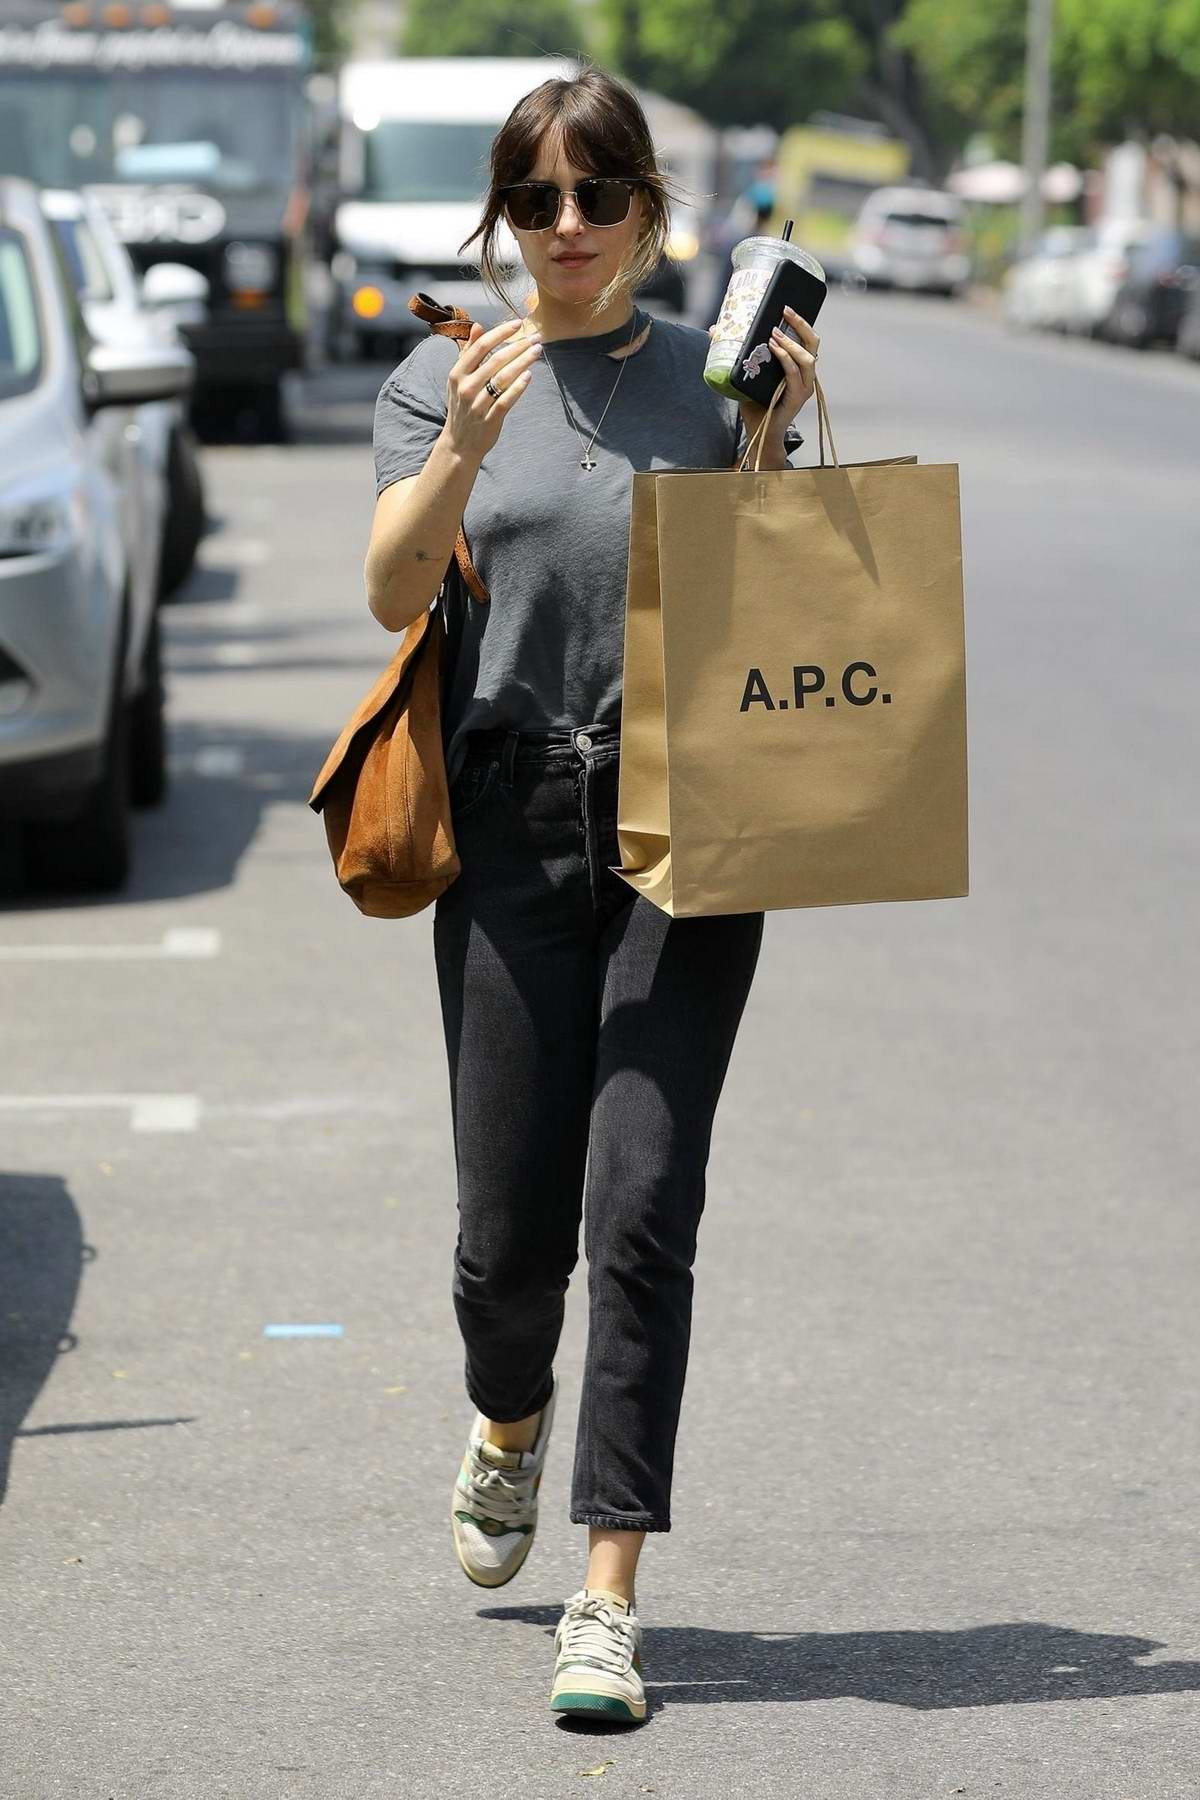 Dakota Johnson wears grey top, black jeans and Gucci sneakers during a shopping trip to A.P.C in Los Angeles